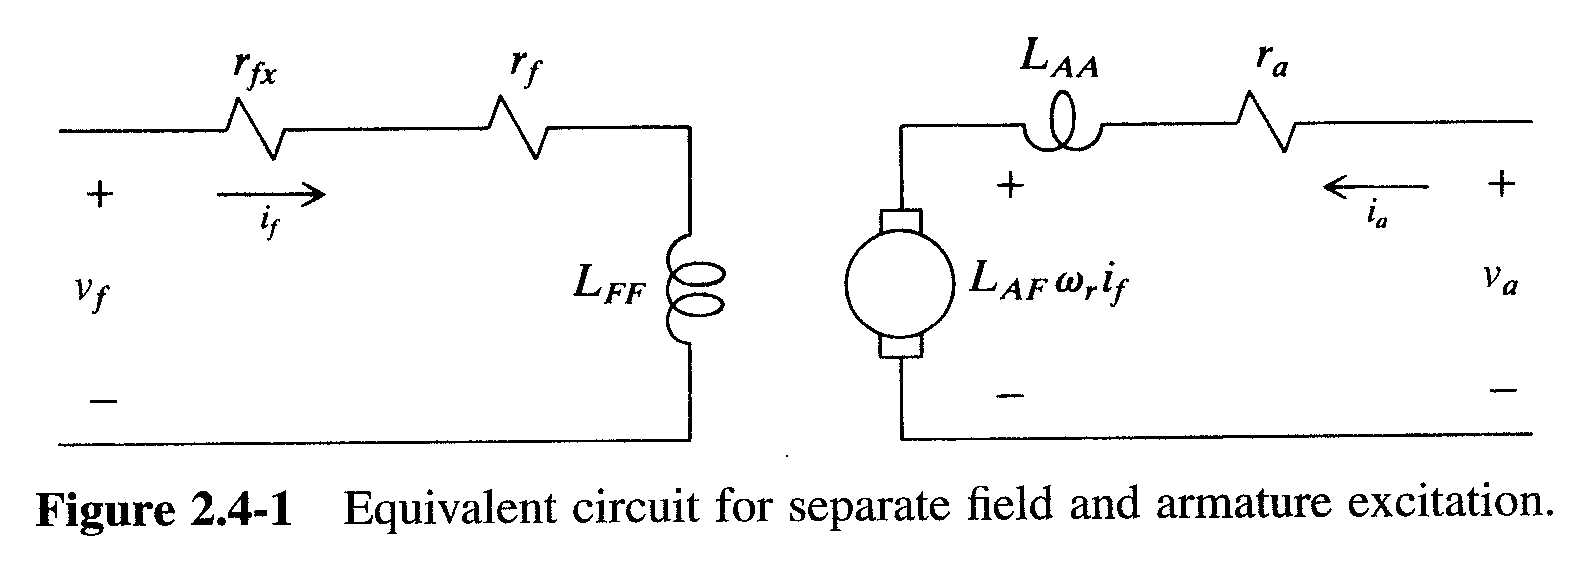 Dc Motor Field Wiring Explained Diagrams Compound Diagram Wound Automotivegarage Org